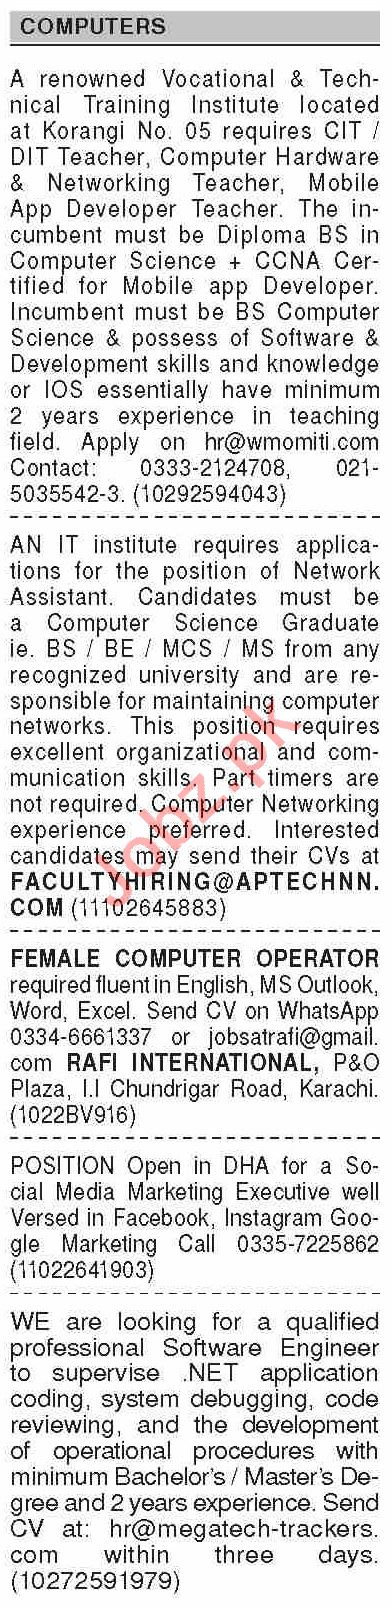 Dawn Sunday Classified Ads 27 Sept 2020 for Computer Staff